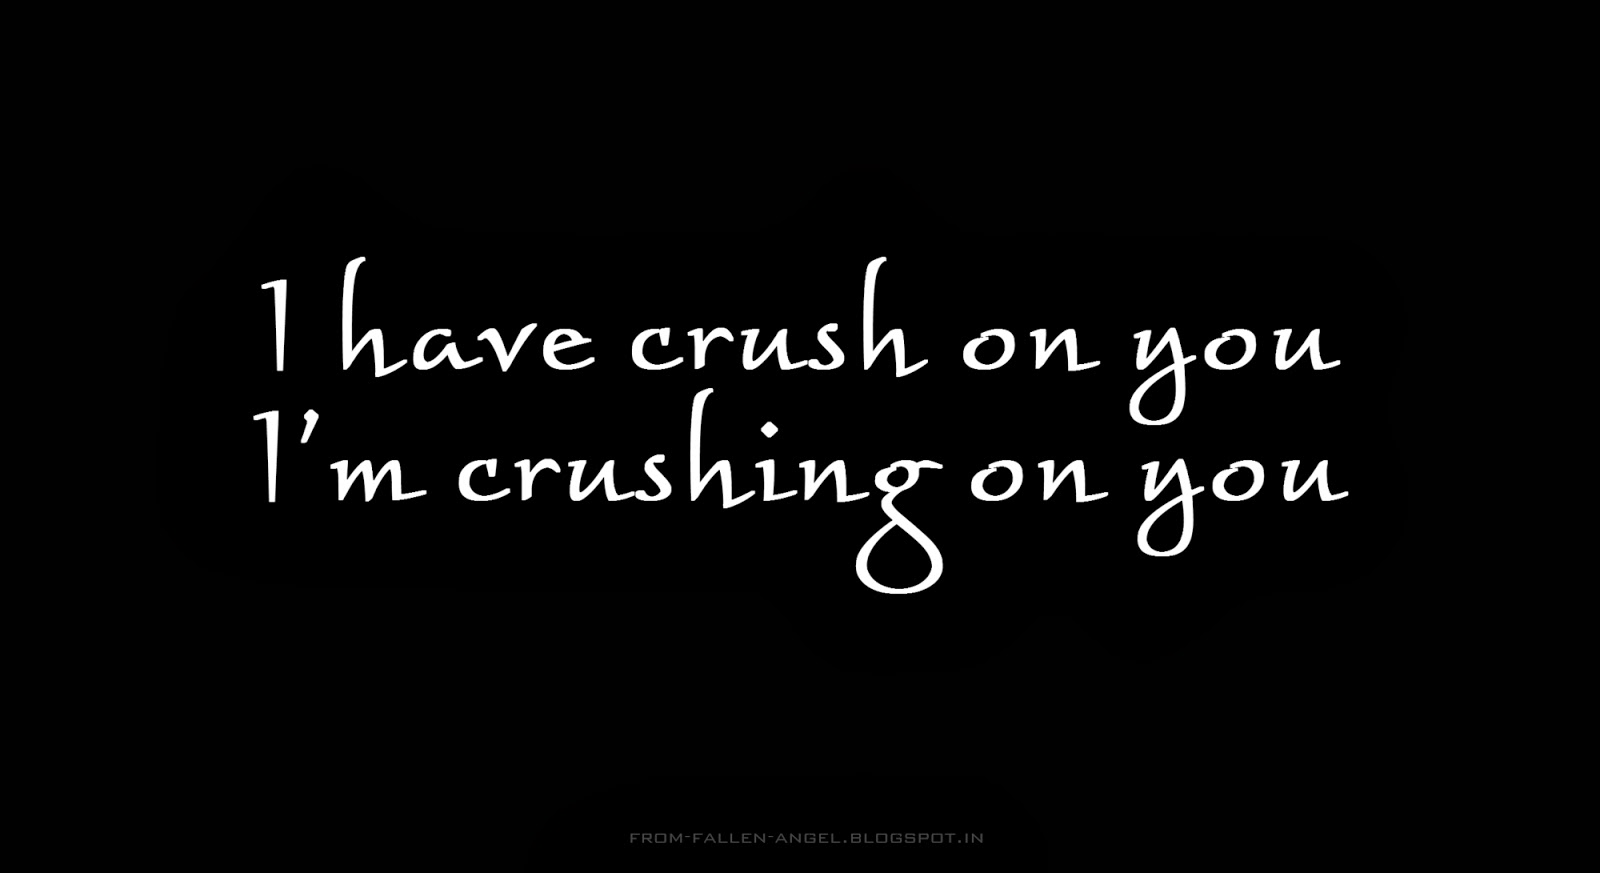 I have crush on you, I'm crushing on you